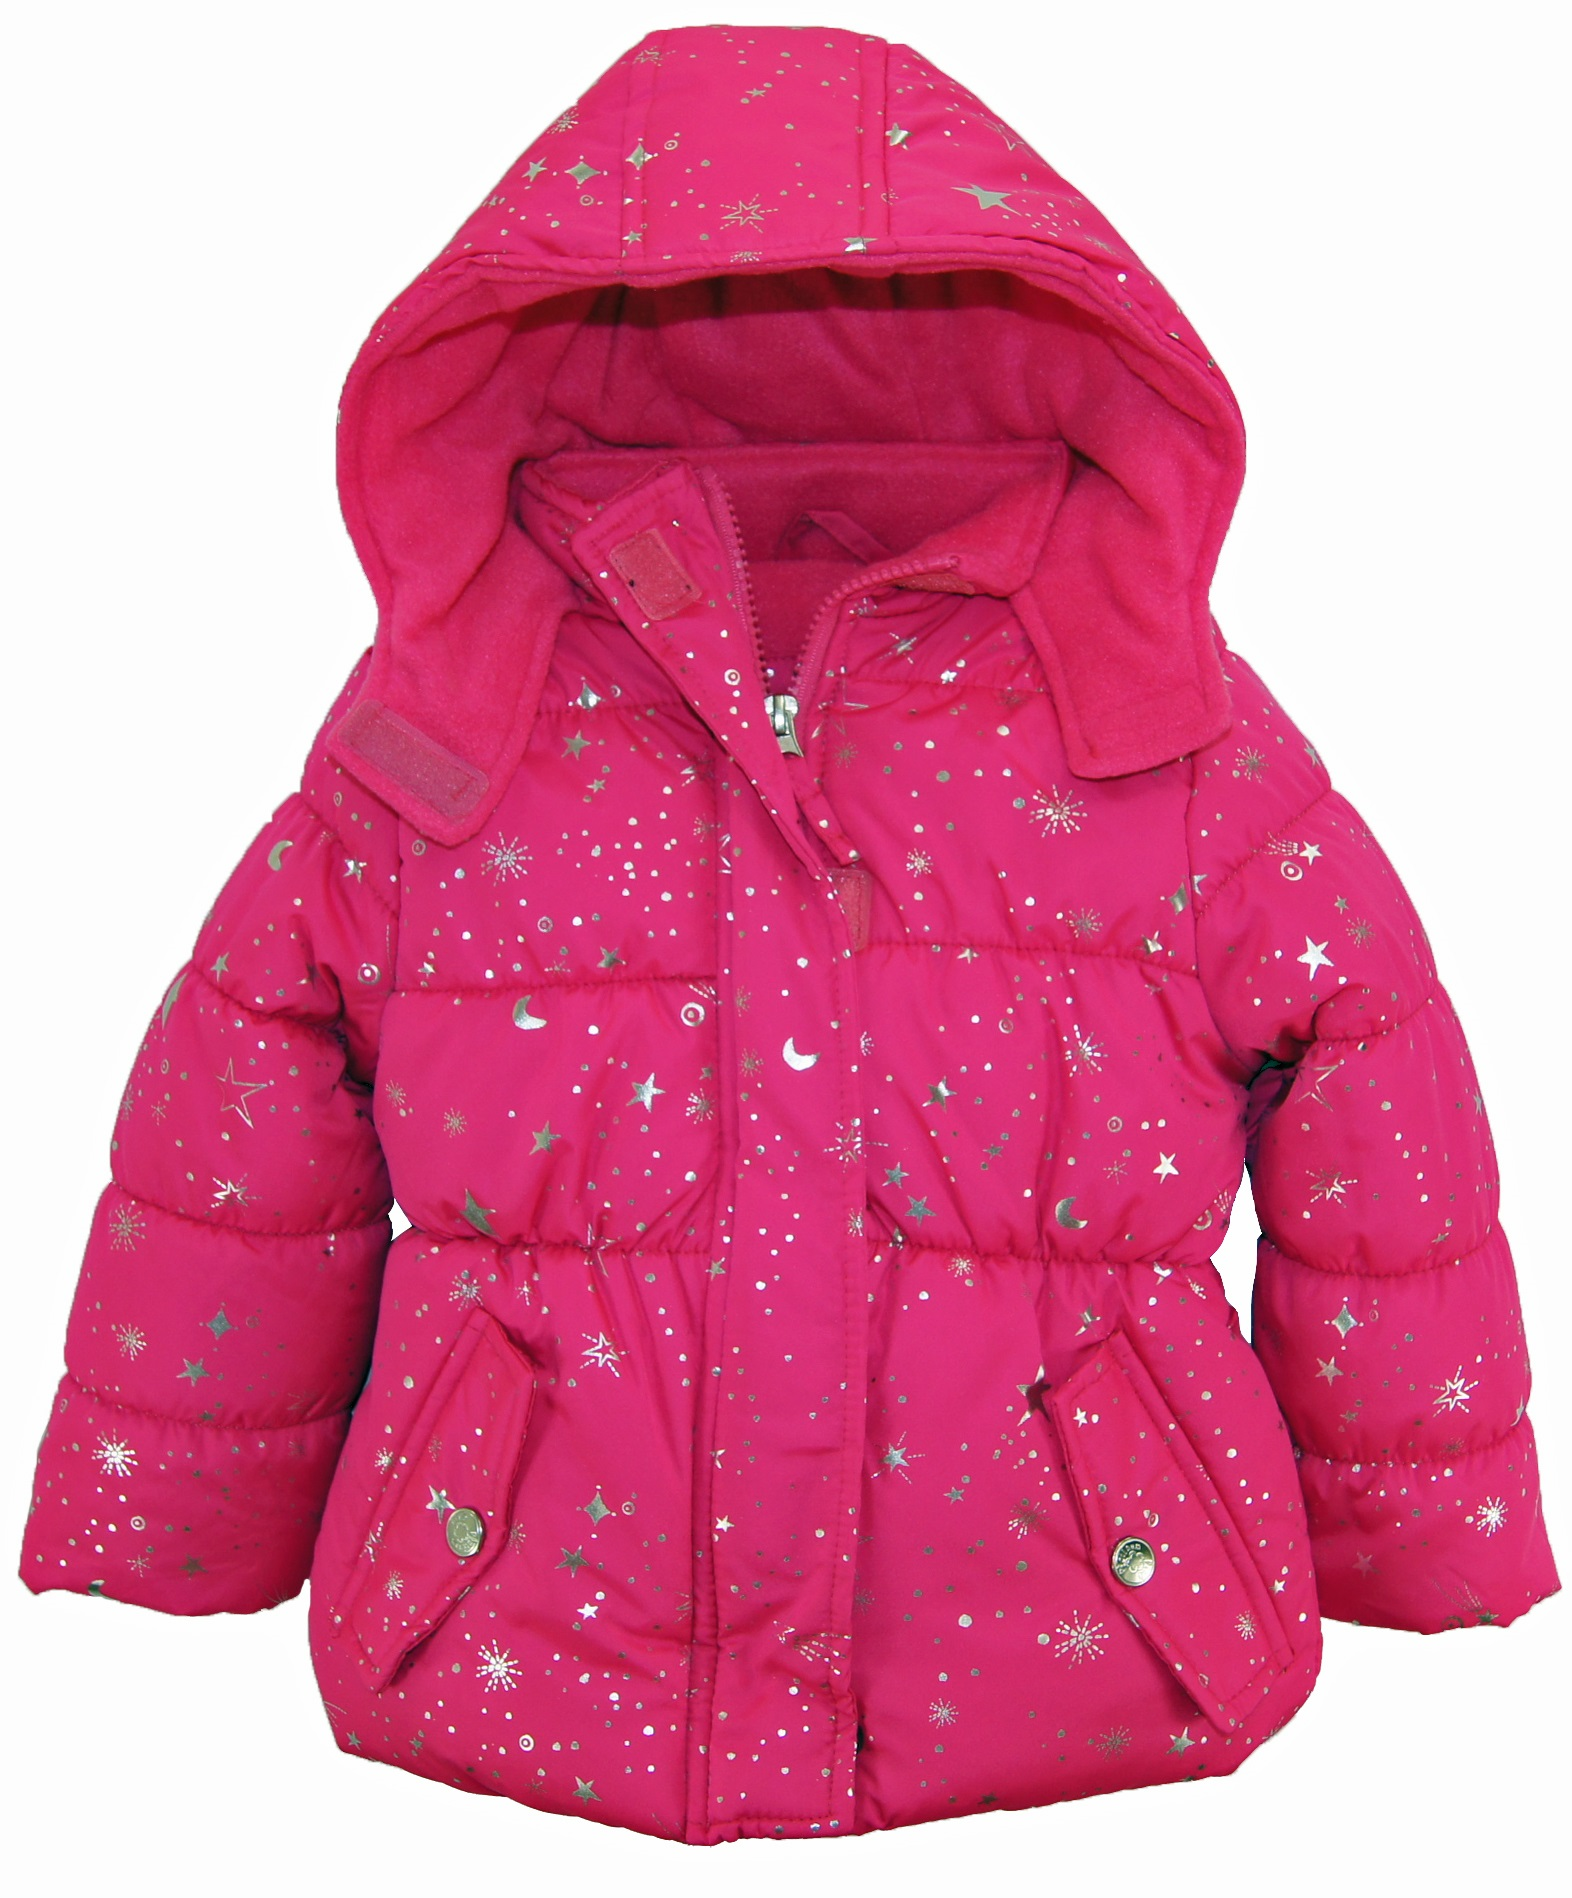 Cute girls jackets and winter coats in baby, infant and toddler sizes (1 through 8) are easy to find at jomp16.tk Little girls and preschool age kids can be picky about the style and comfort of their winter coat or jacket, so jomp16.tk has the name brands they want in the styles they'll love.